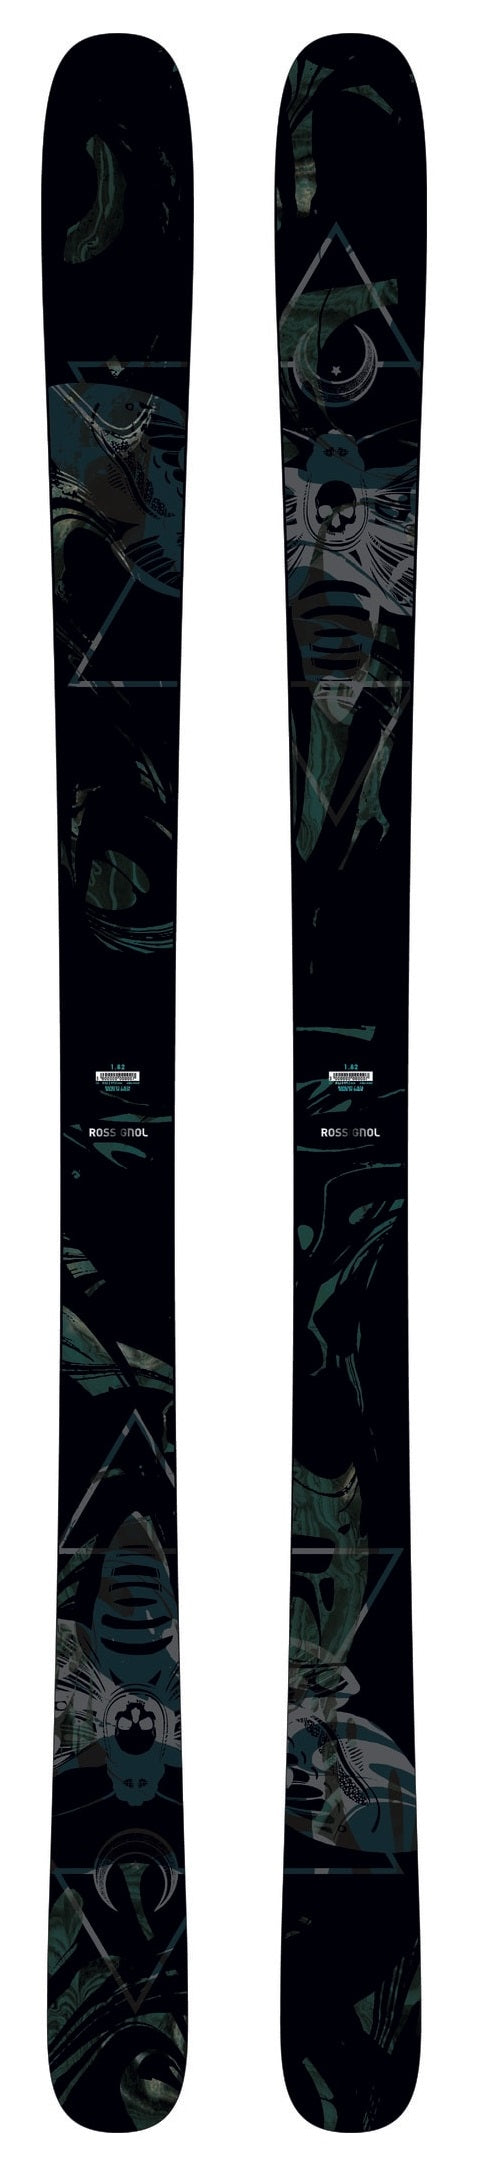 2020 Rossignol Black Ops 98 W ladies skis - ProSkiGuy your Hometown Ski Shop on the web